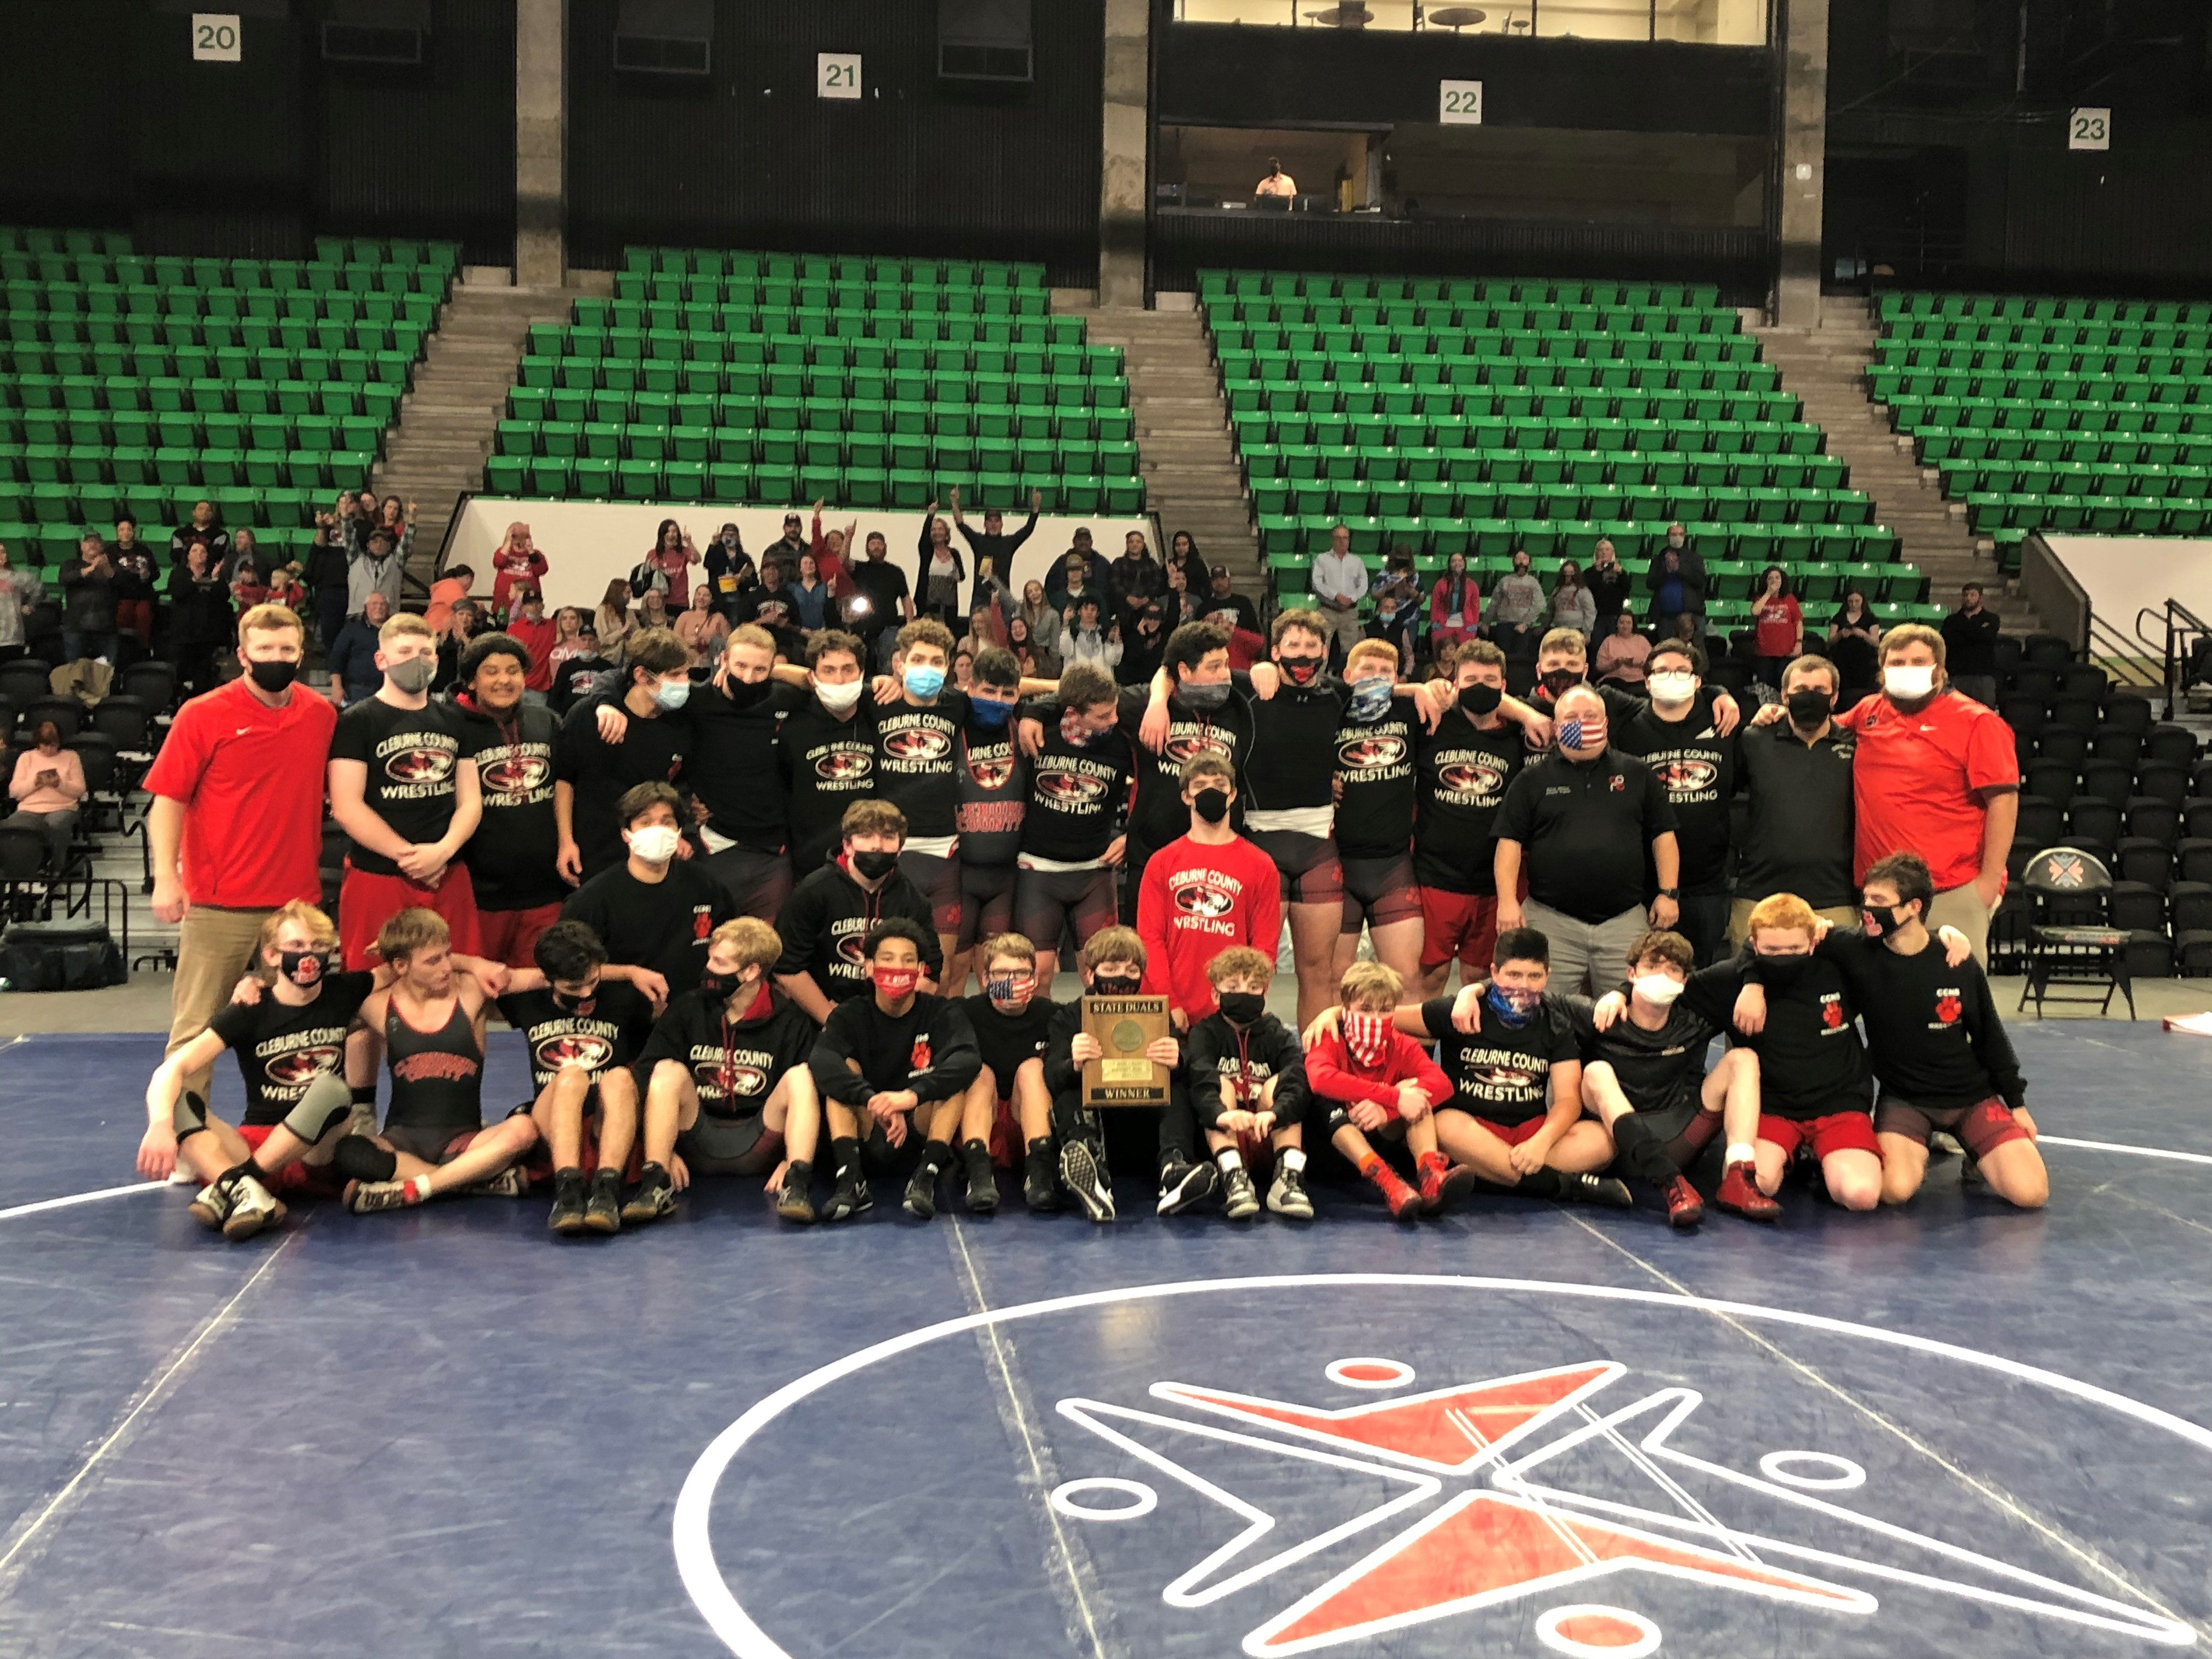 Cleburne County Rallies to Nip Ashville 43-34 to Claim the Class 1A/4A Duals Wrestling Title